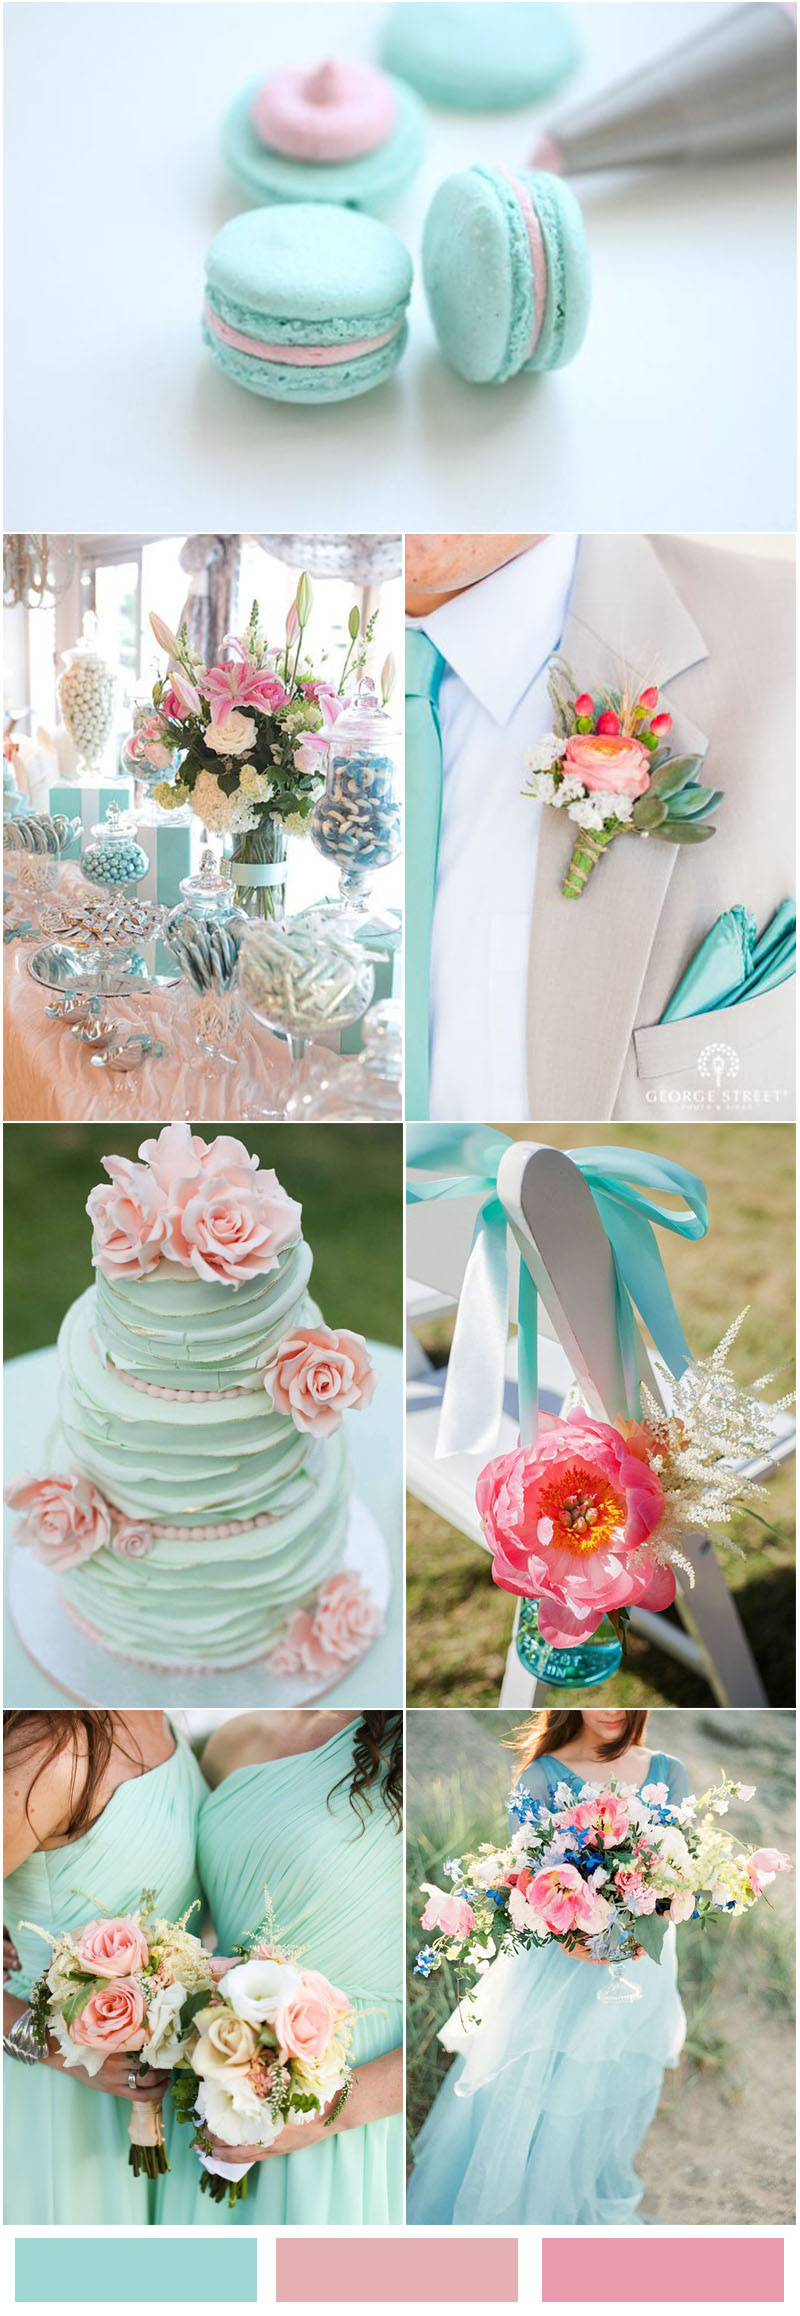 Tiffany Blue and Blush Pink Wedding Color Ideas